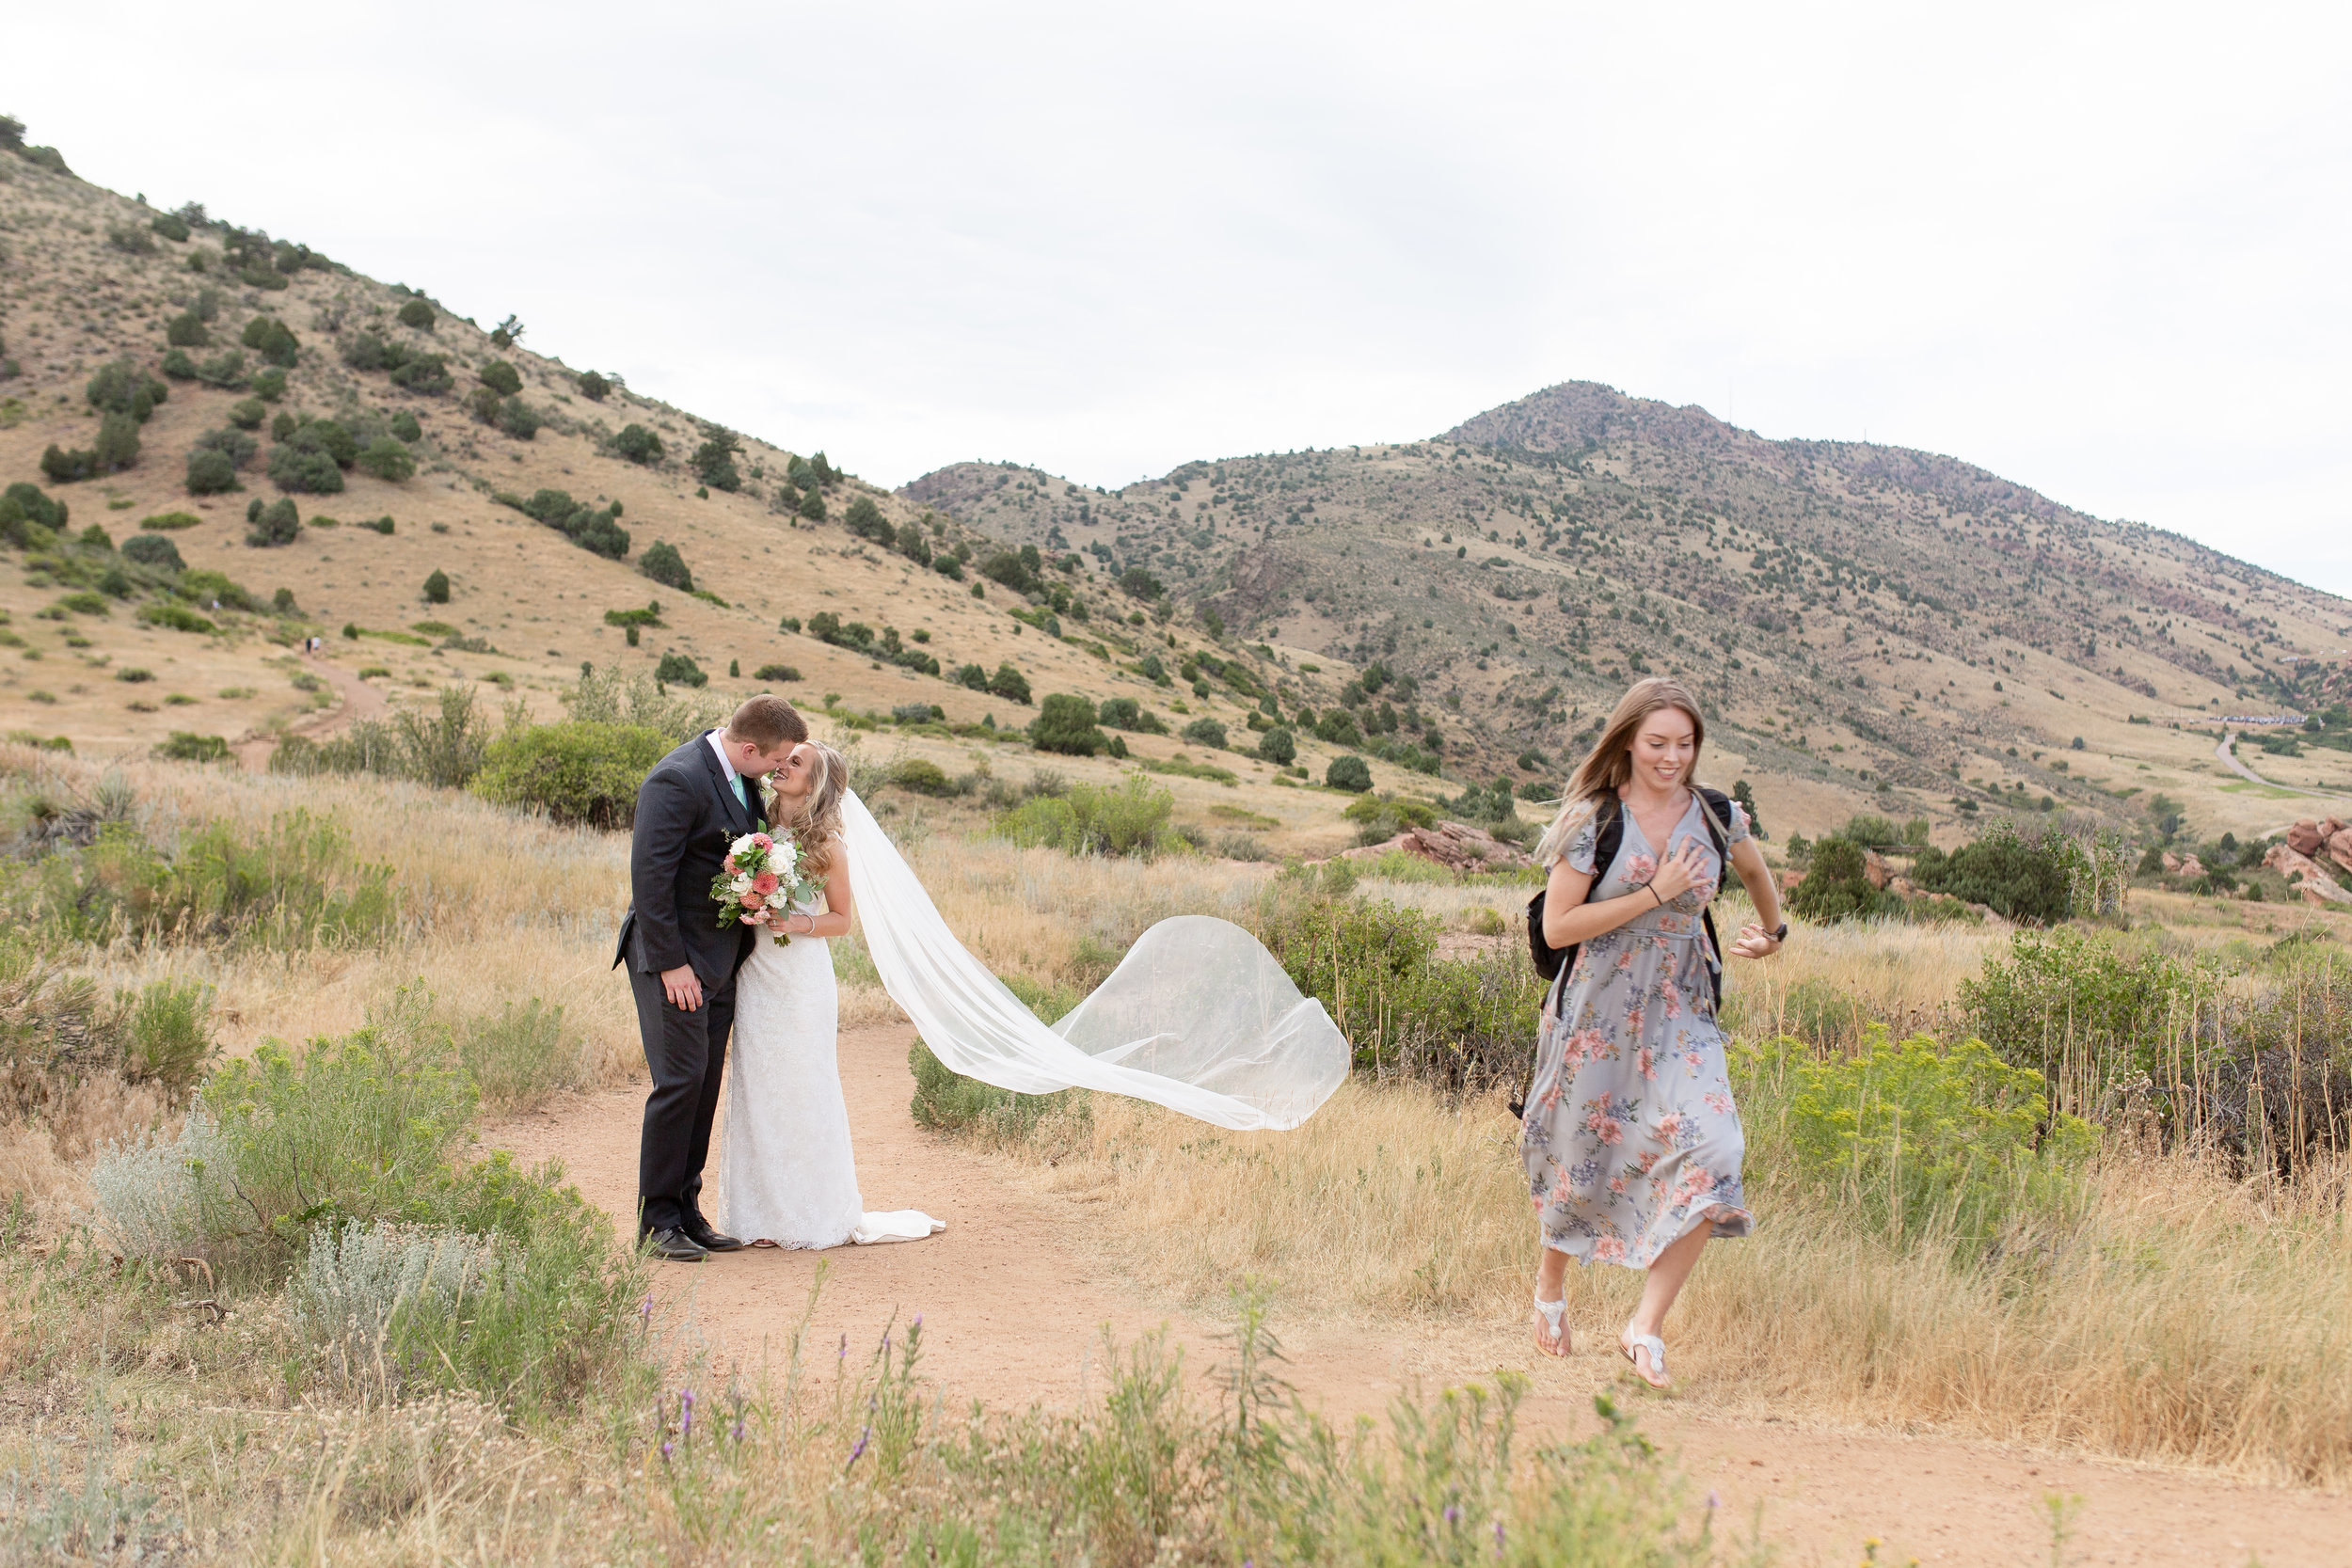 Jenna - my sister - was my assistant for this wedding. She helped lug my gear around and kept us on schedule, but she also tossed the veil and dashed for me. Here's Jenna in action!